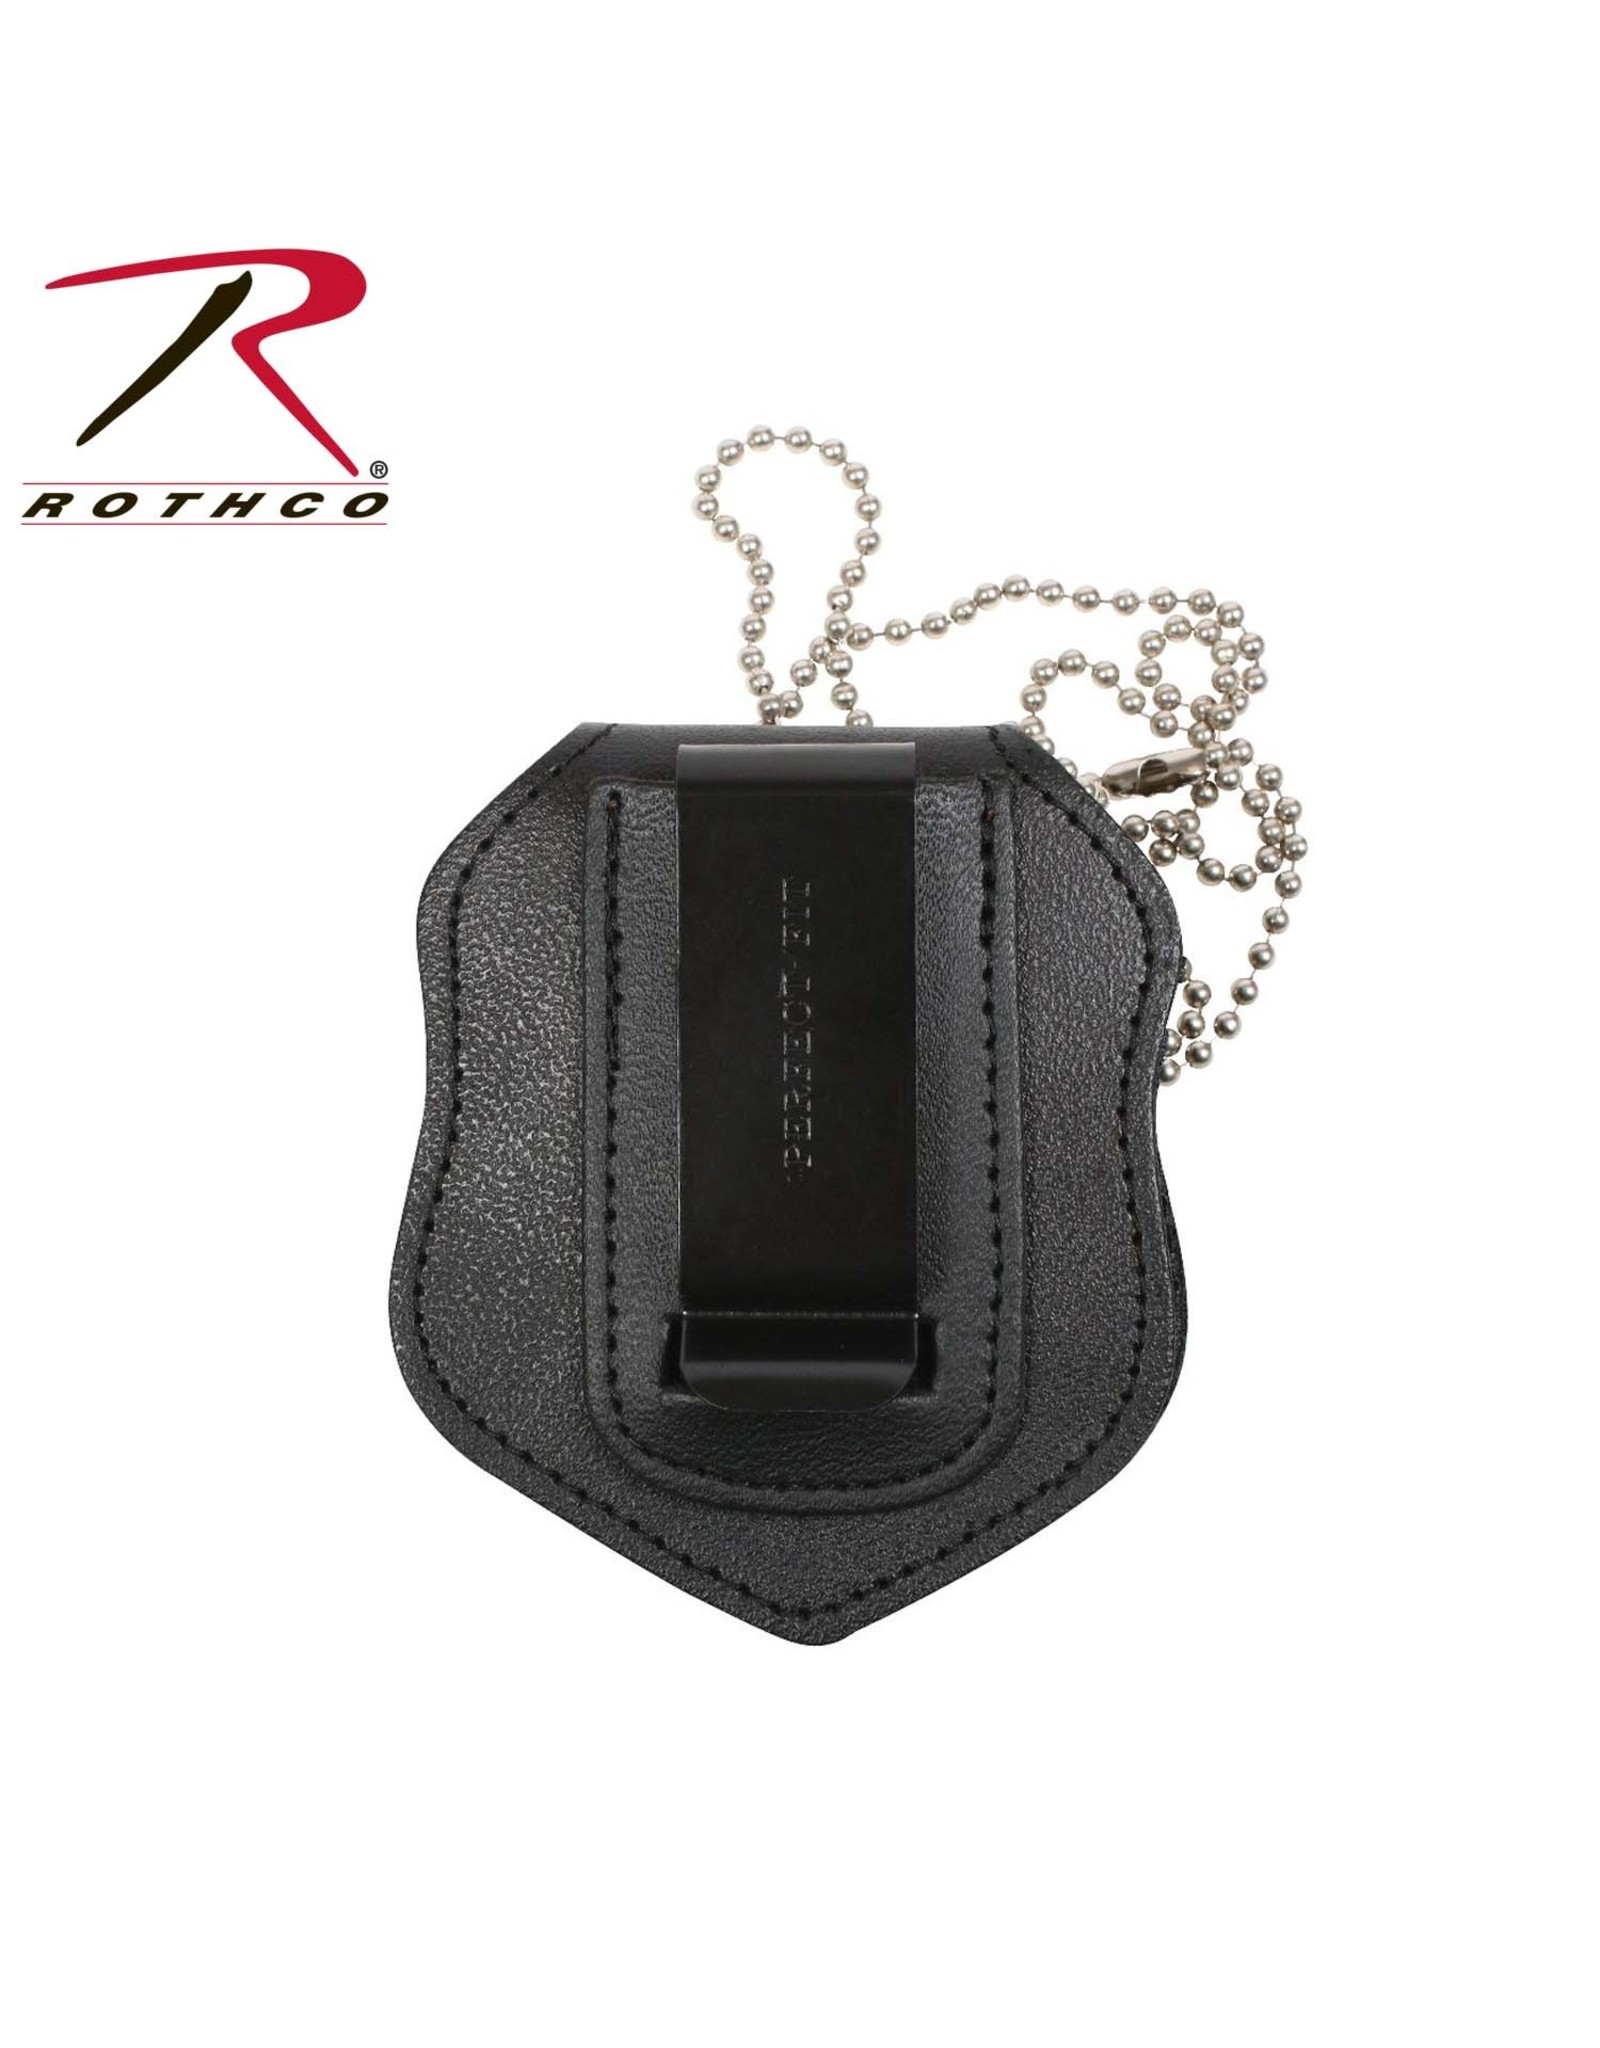 Rothco Badge Holder W/ Clip & Chain